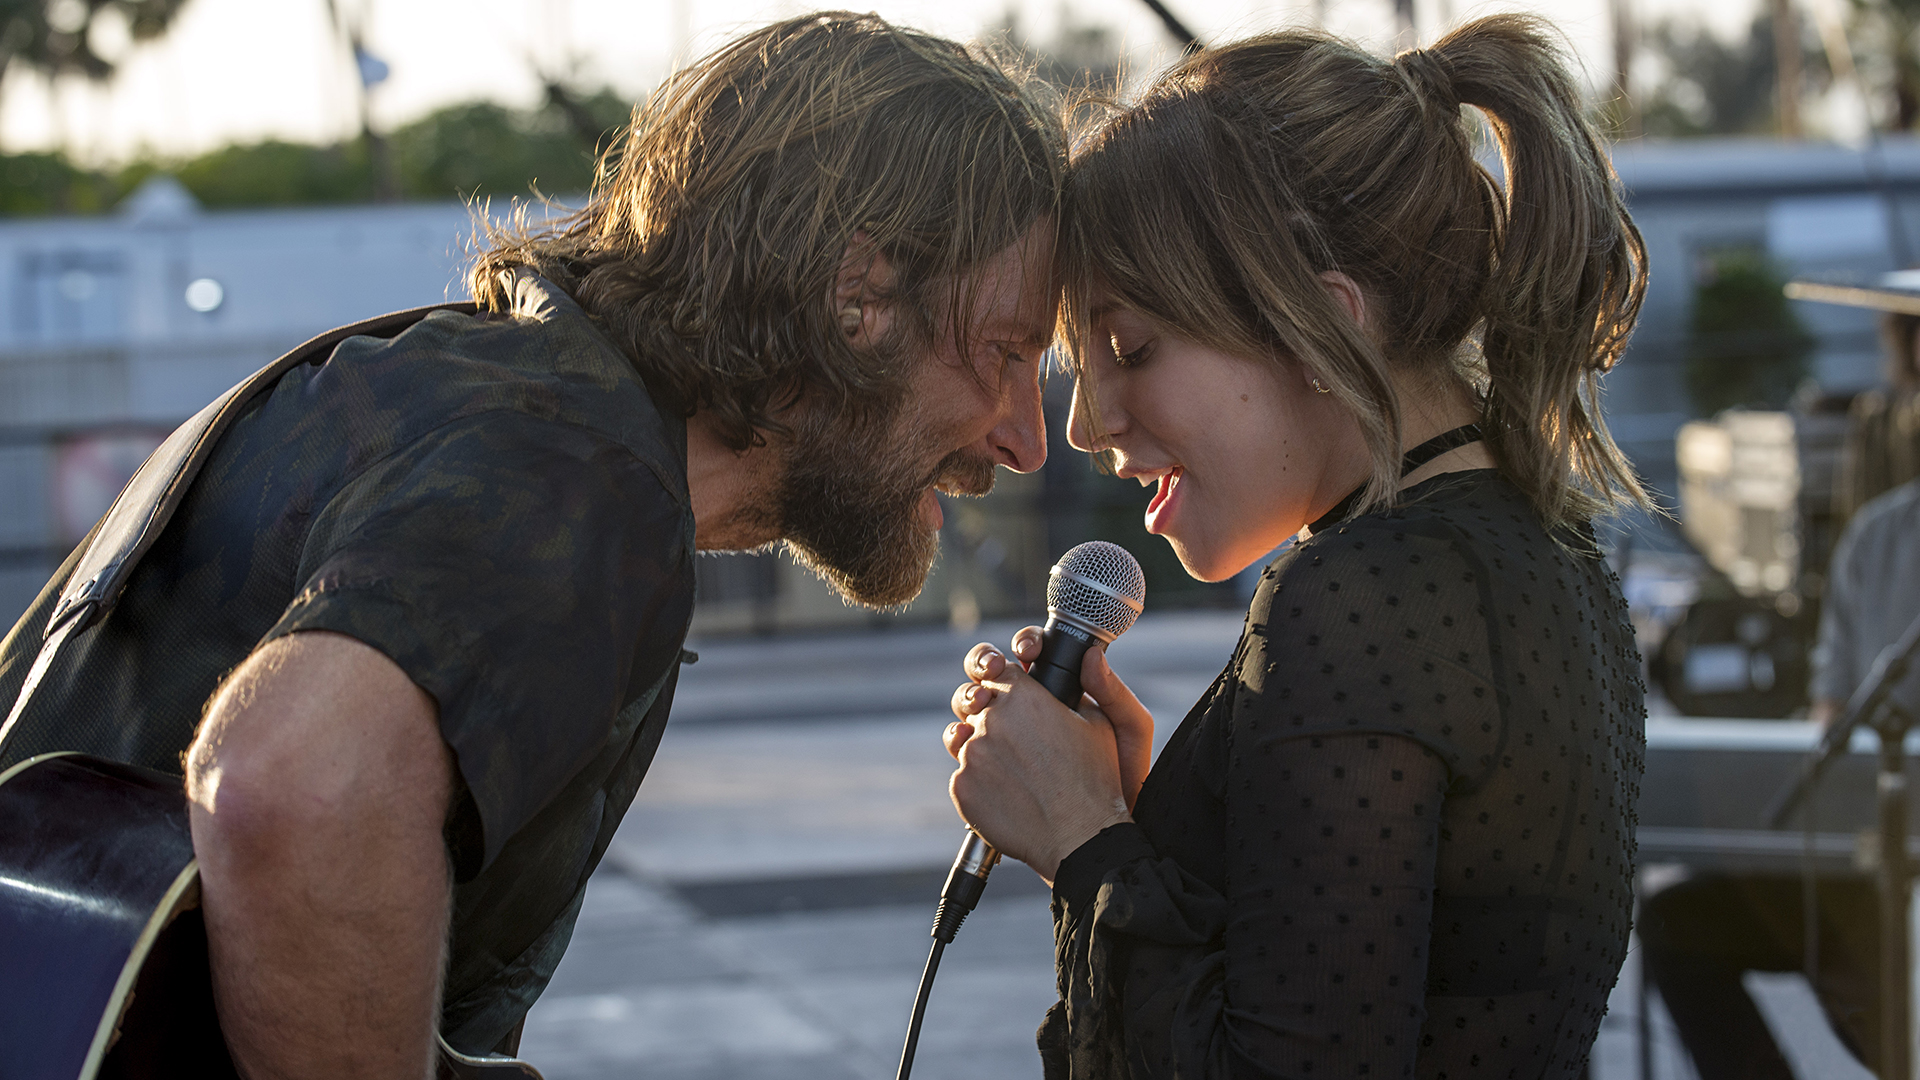 Get a 1st look at Lady Gaga and Bradley Cooper in 'A Star Is Born' trailer